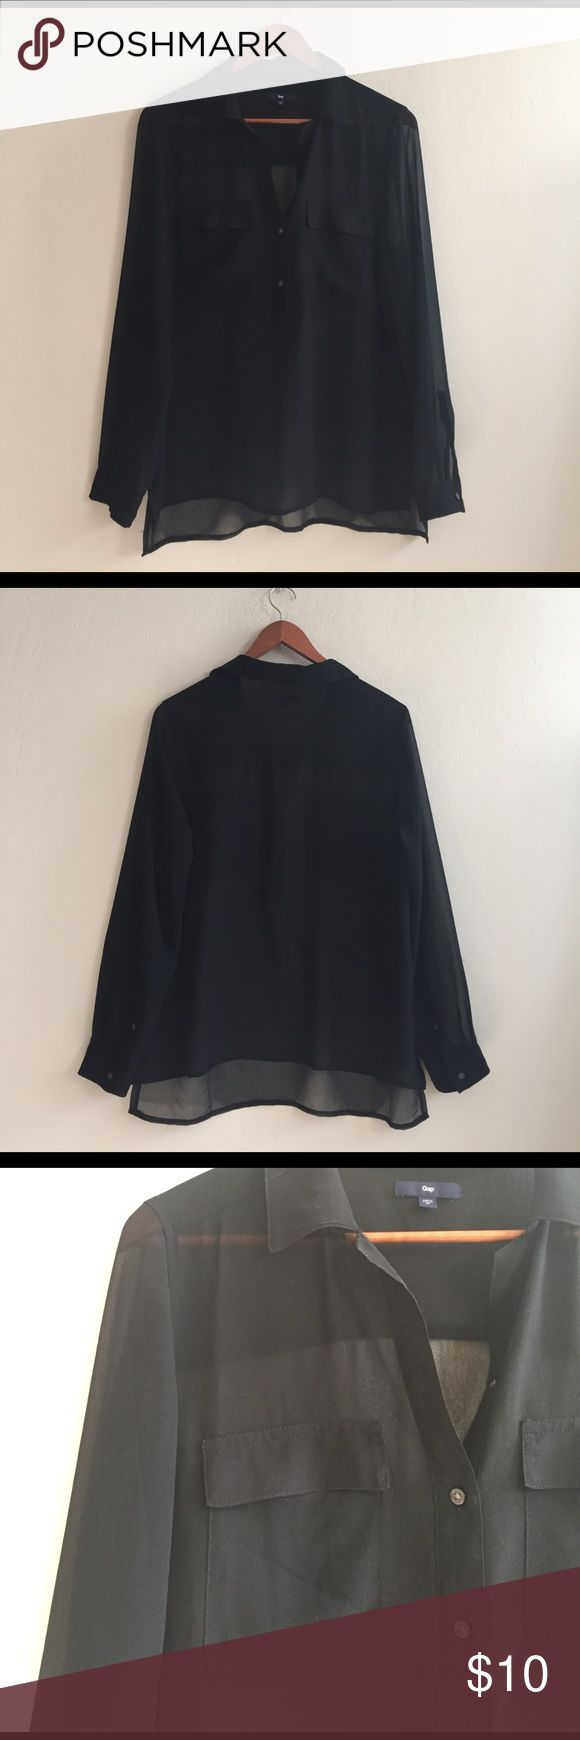 GAP Sheer black blouse Gently loved! Price reflects wear. Polyester blouse by GAP. Asymmetrical hem. Super cute with ripped jeans and flats! GAP Tops Blouses